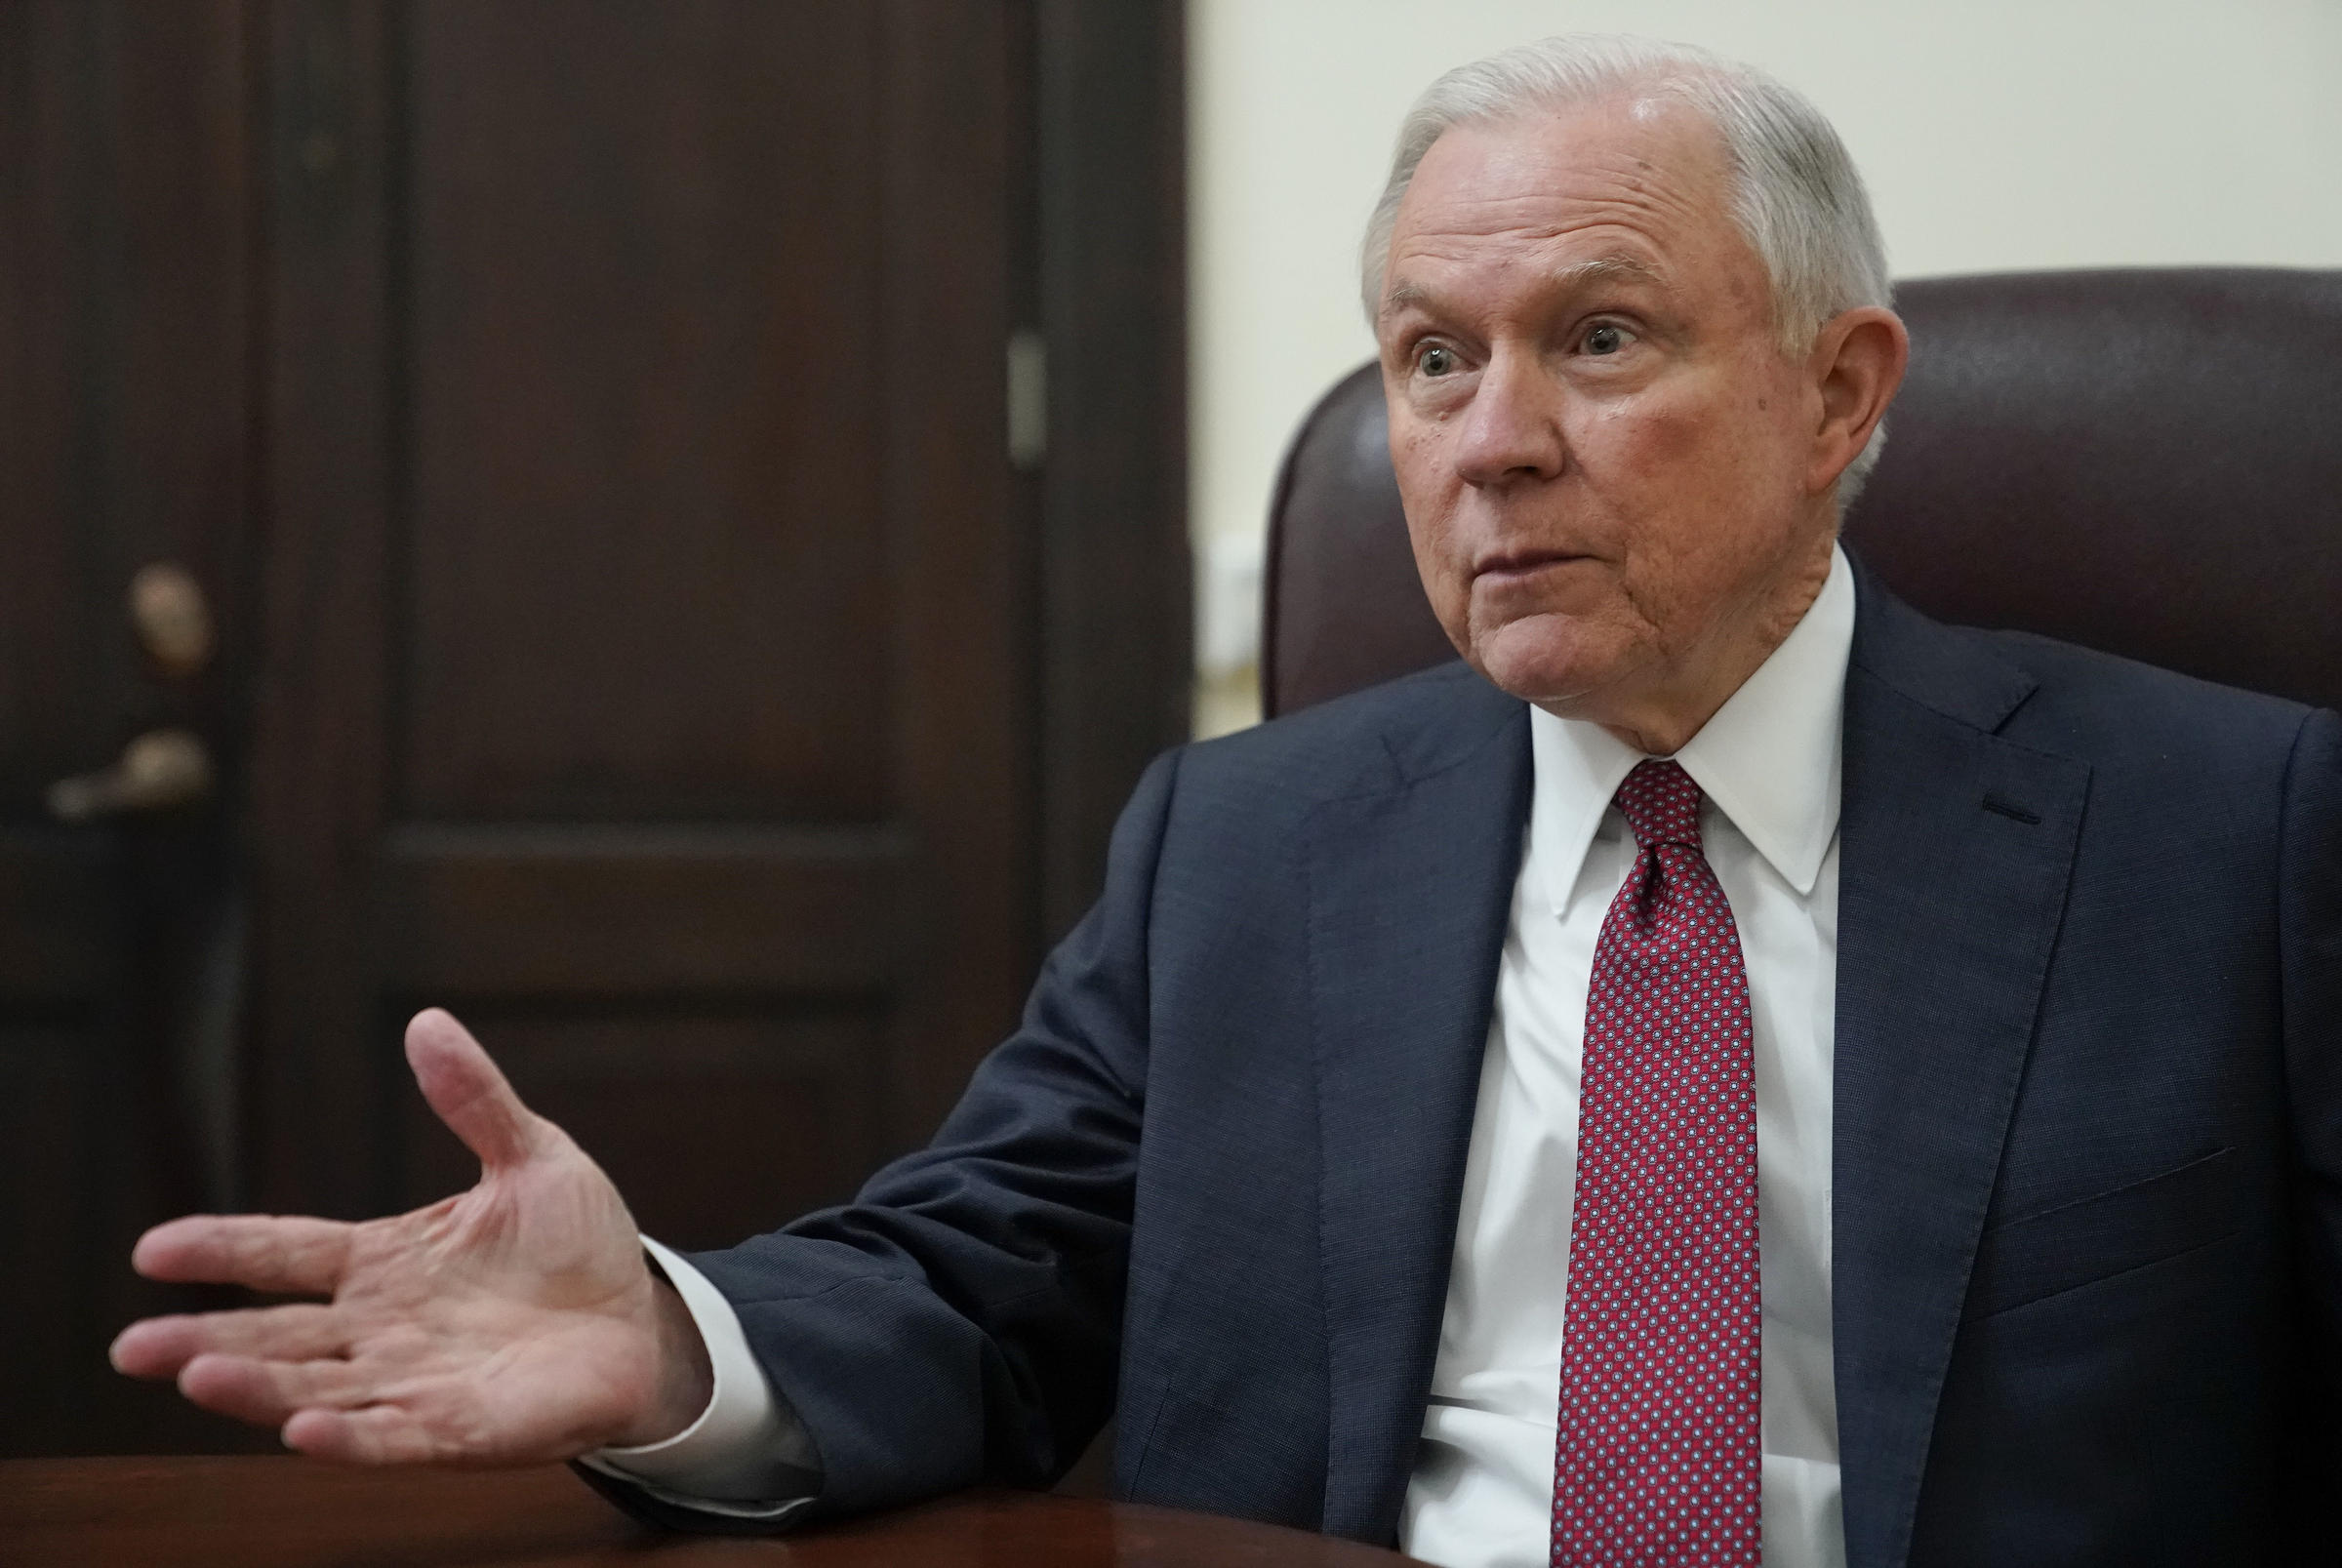 Justice Department to cities: Focus on crime committed by illegal immigrants